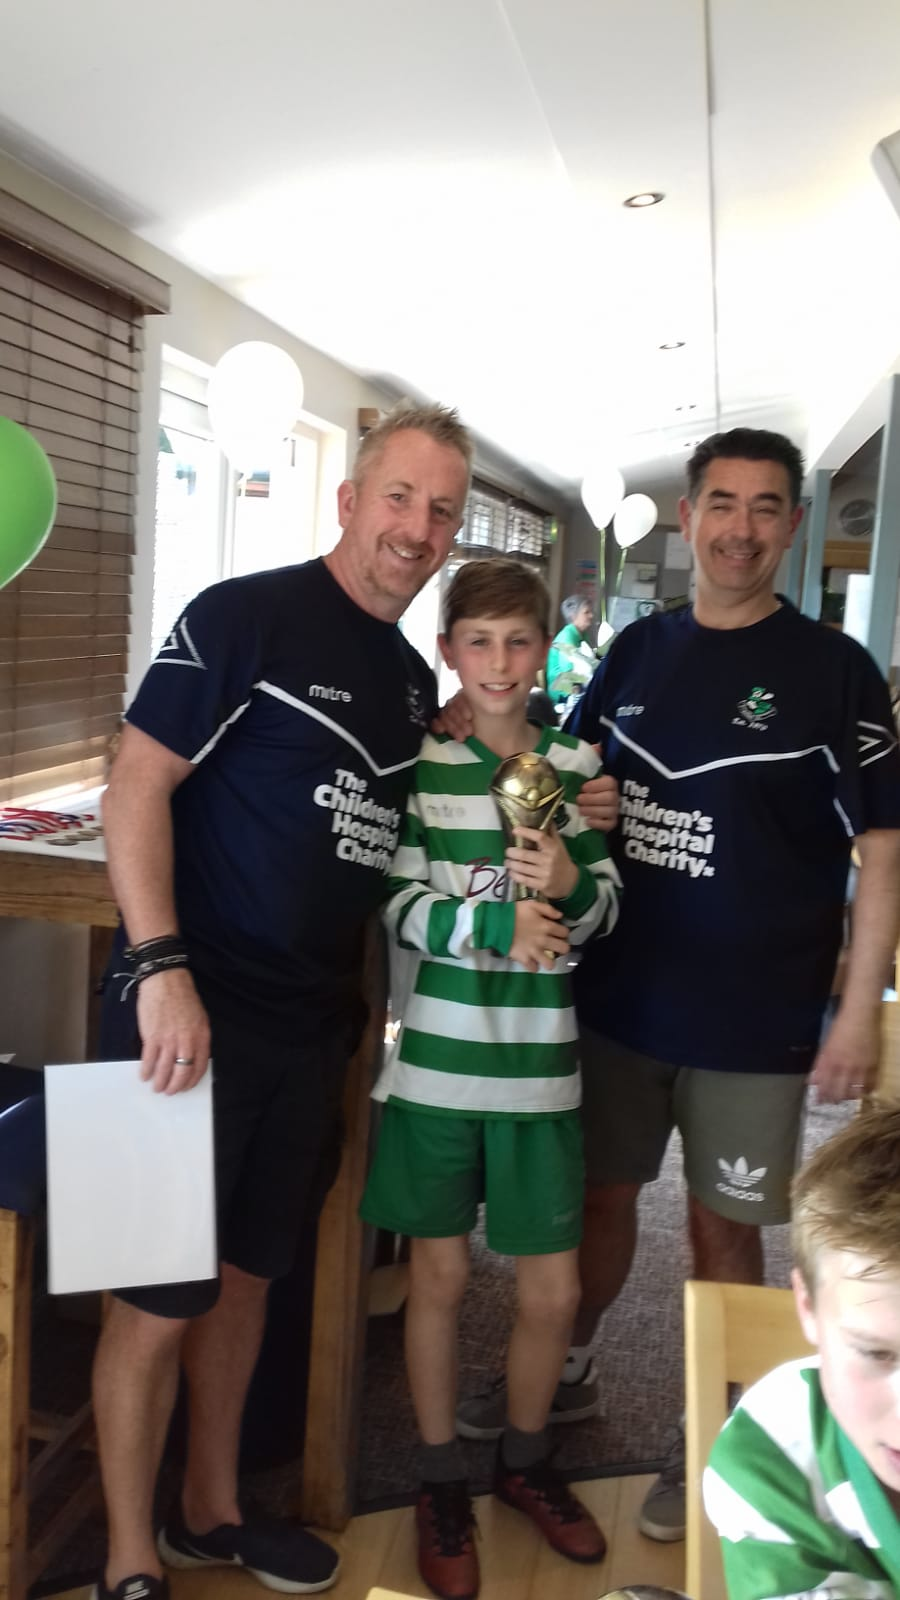 'Player's Player' winner Billy with Managers Mark Woodcock and Kevin Boltruszko